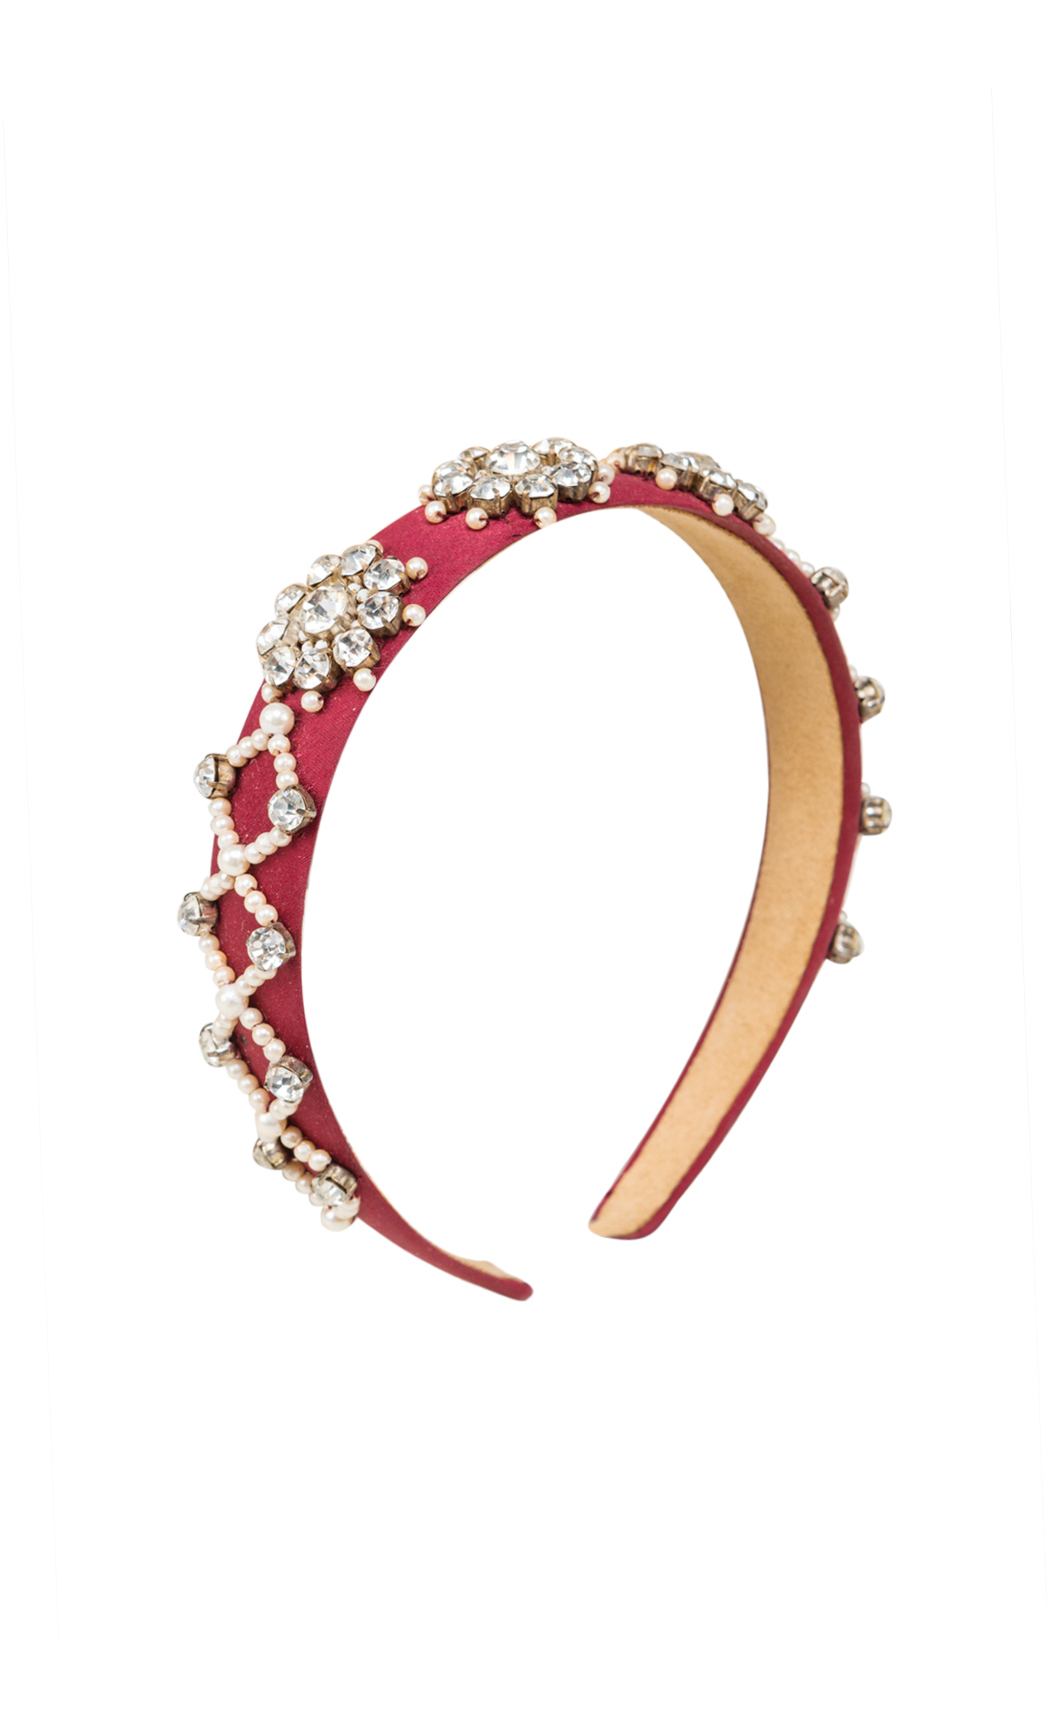 Maroon Hair Band with Pearls and Rhinestones